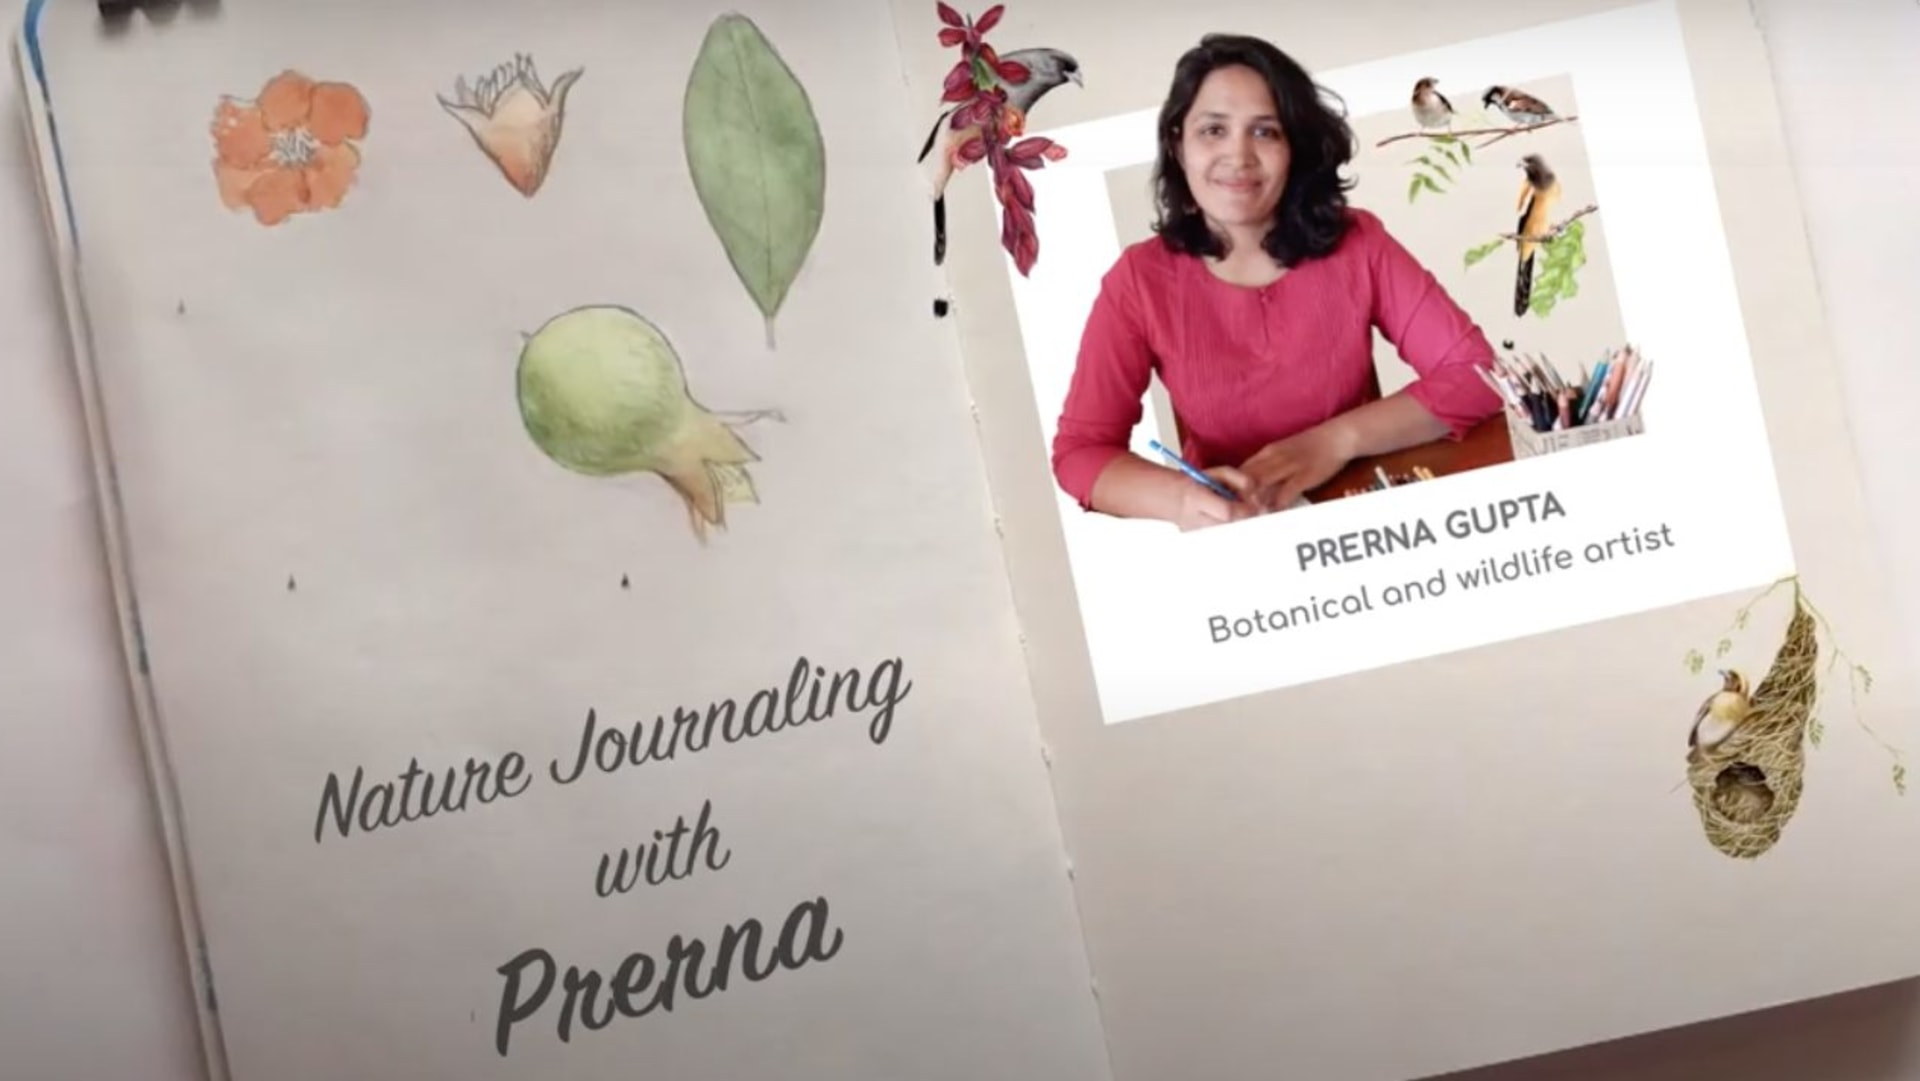 Nature Journaling with Prerna Gupta